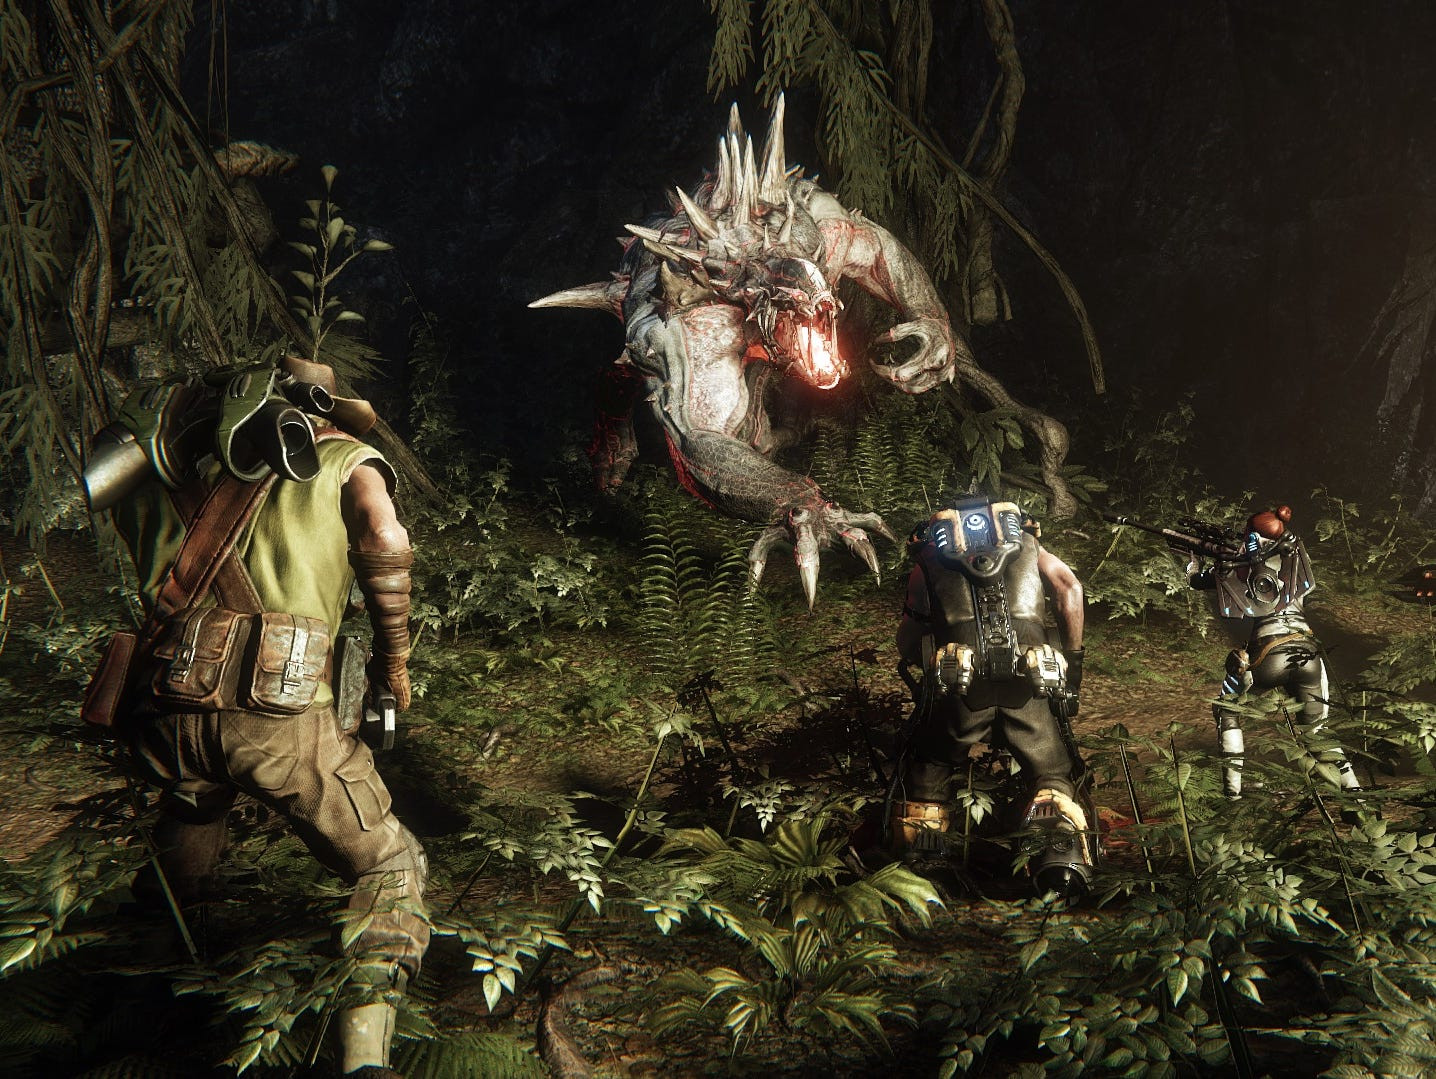 Hunters square off against a monster in 'Evolve.'